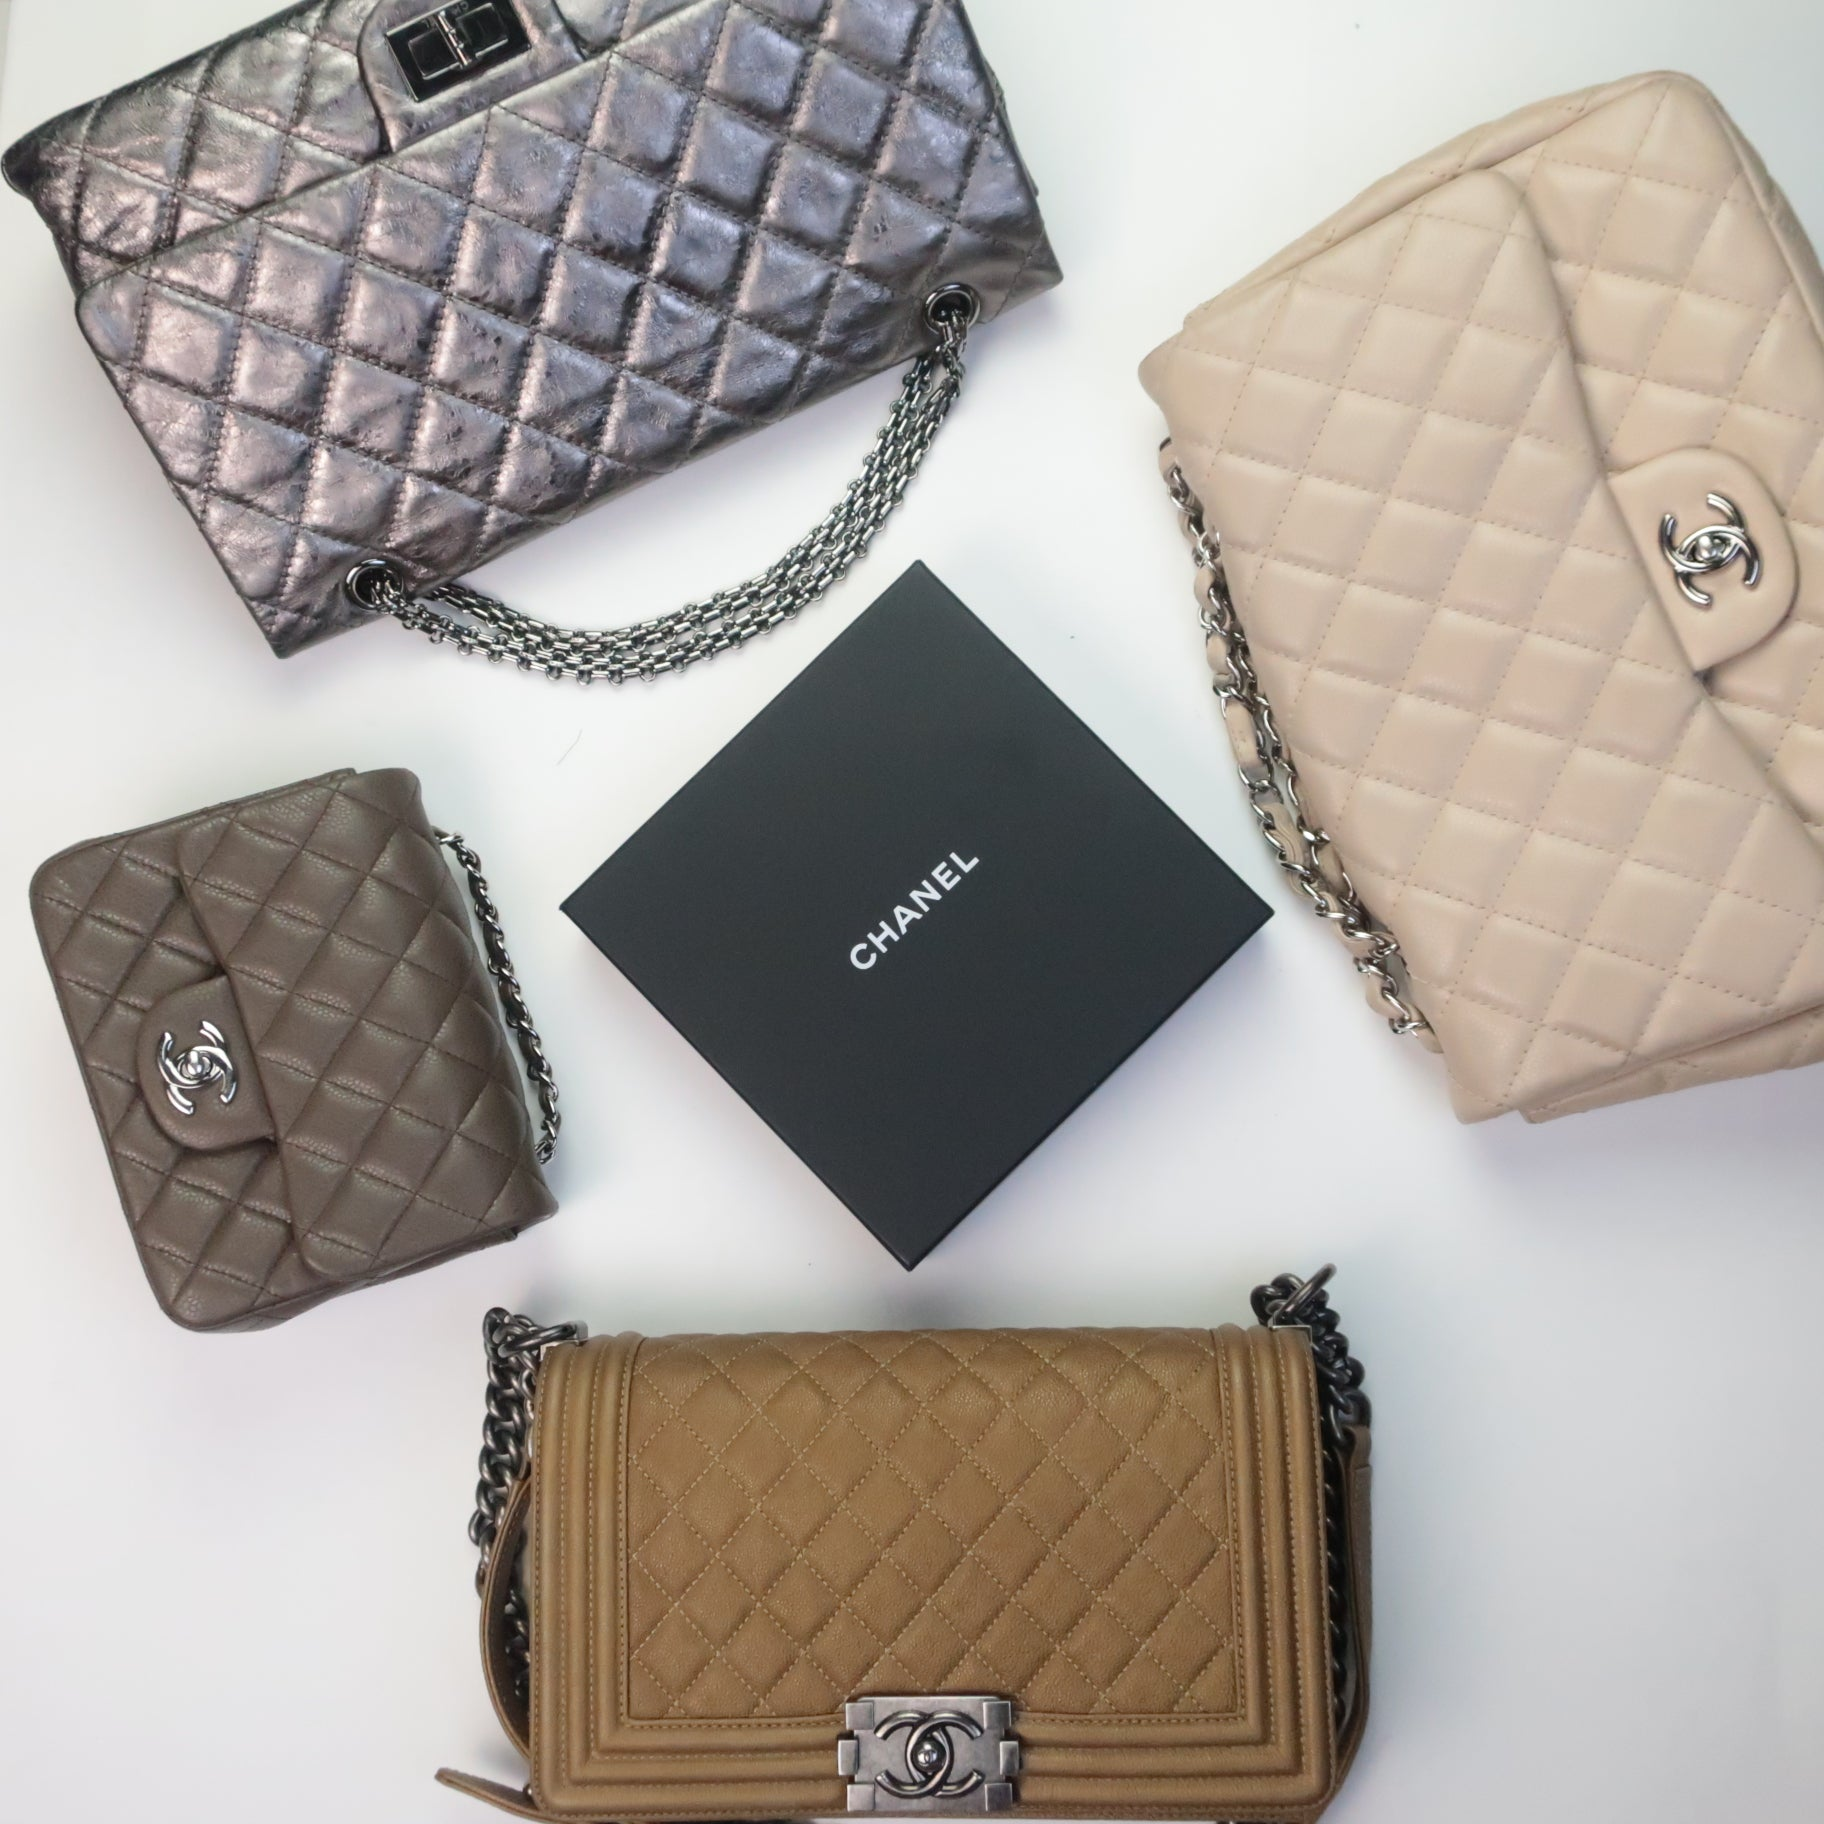 Chanel Increases Prices Worldwide for the Second Time in July 2021